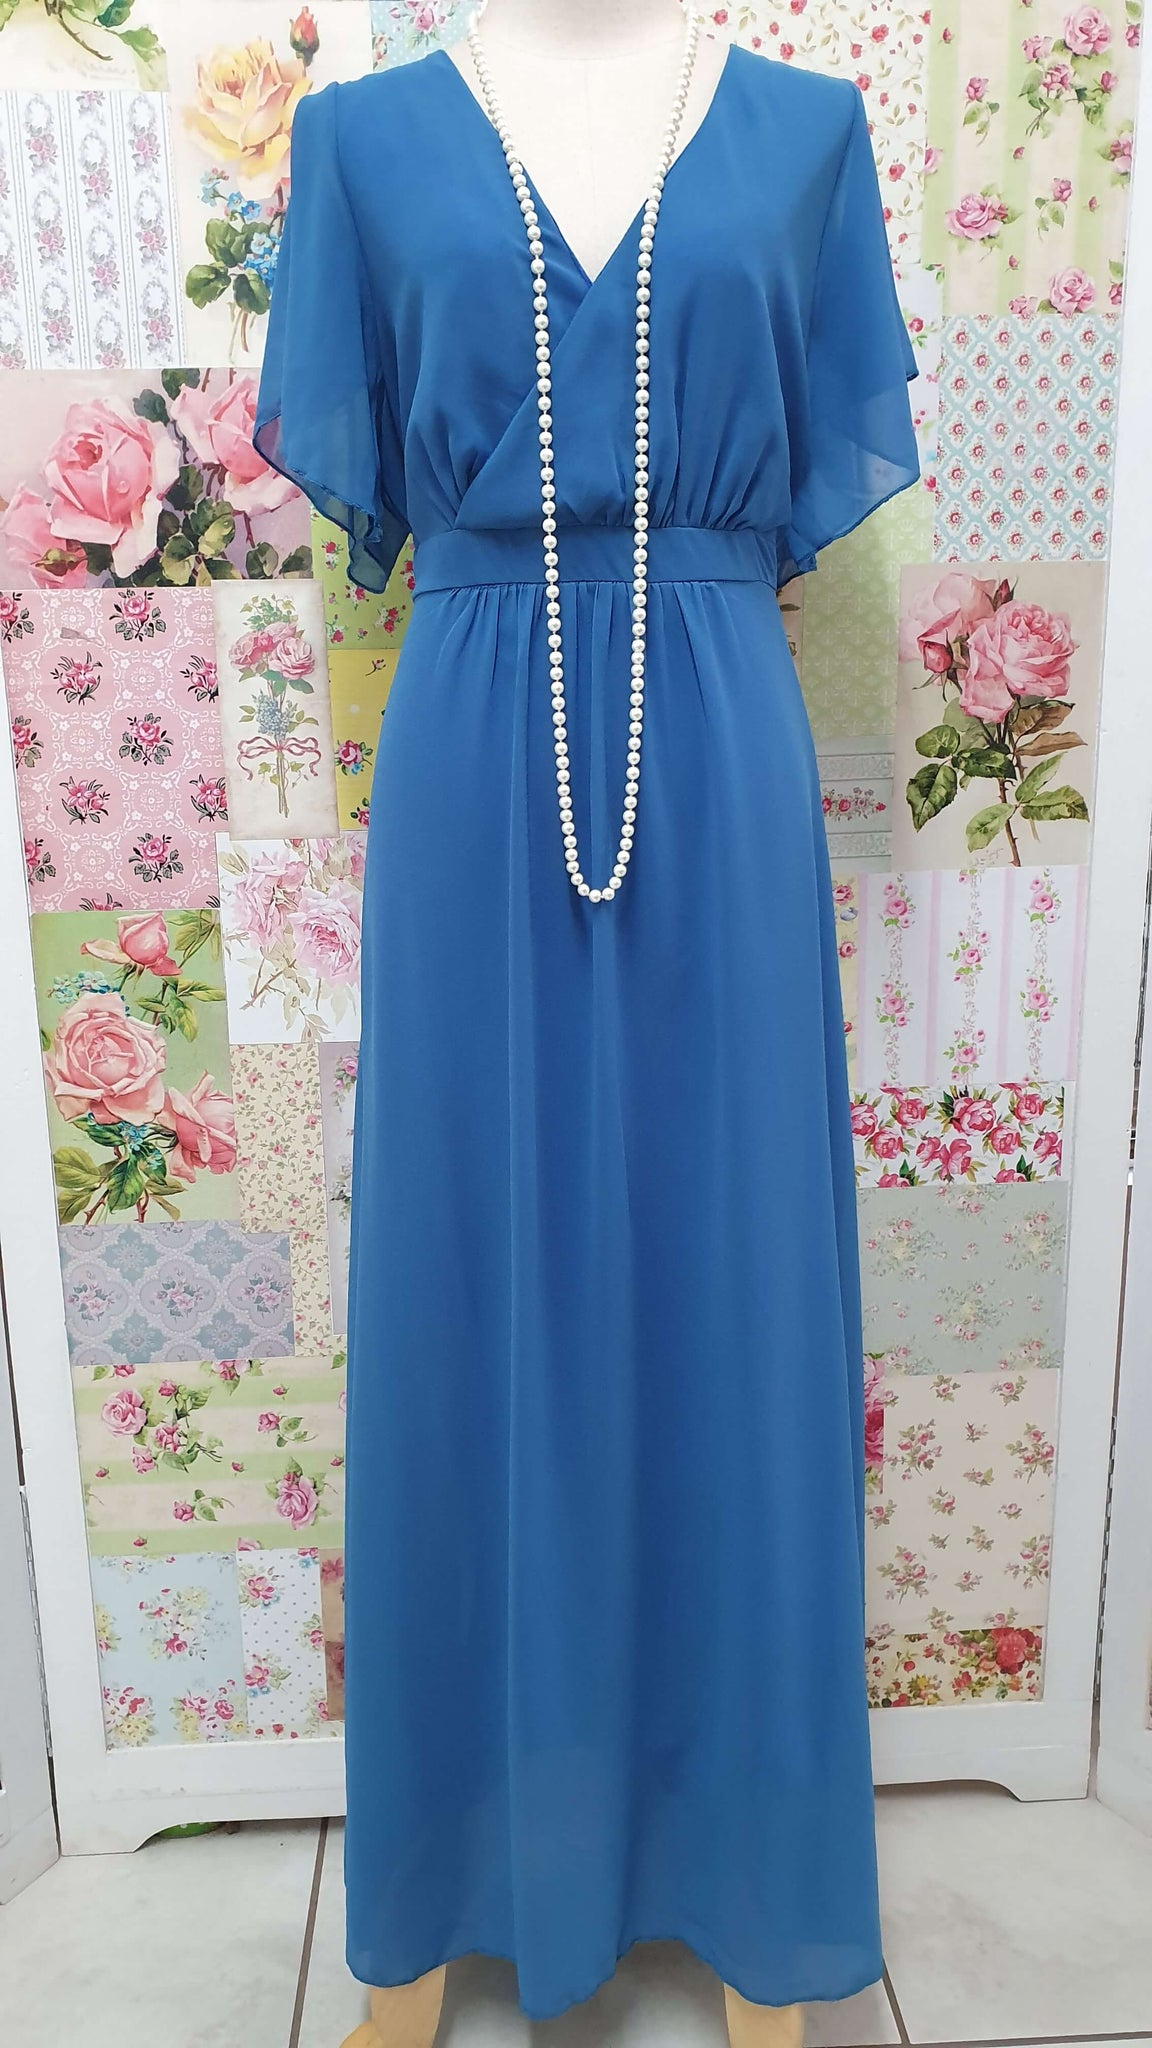 Petrol Blue Dress MB0114